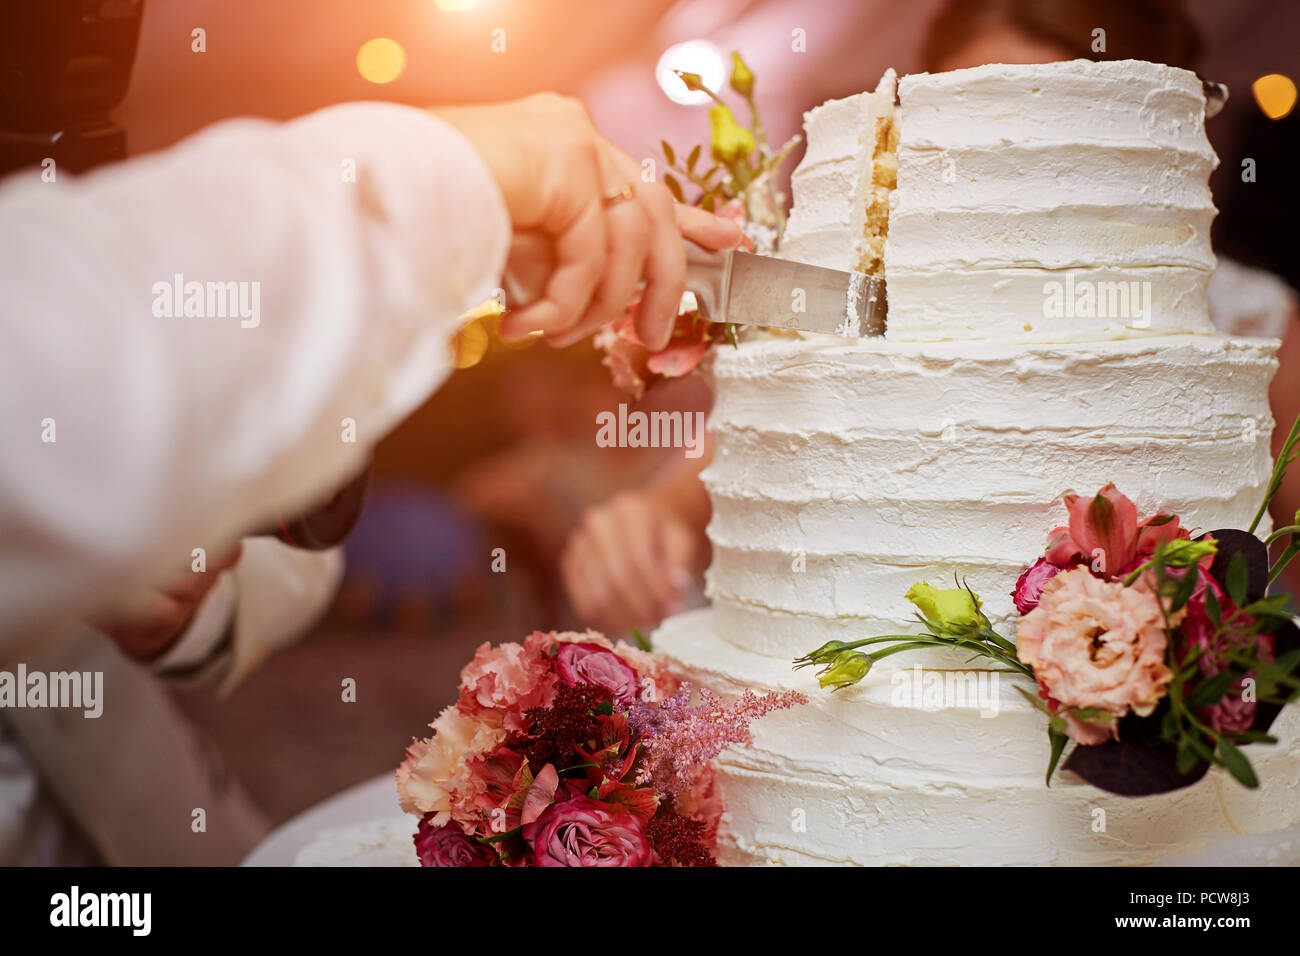 Bride and groom are cutting wedding cake - Stock Image